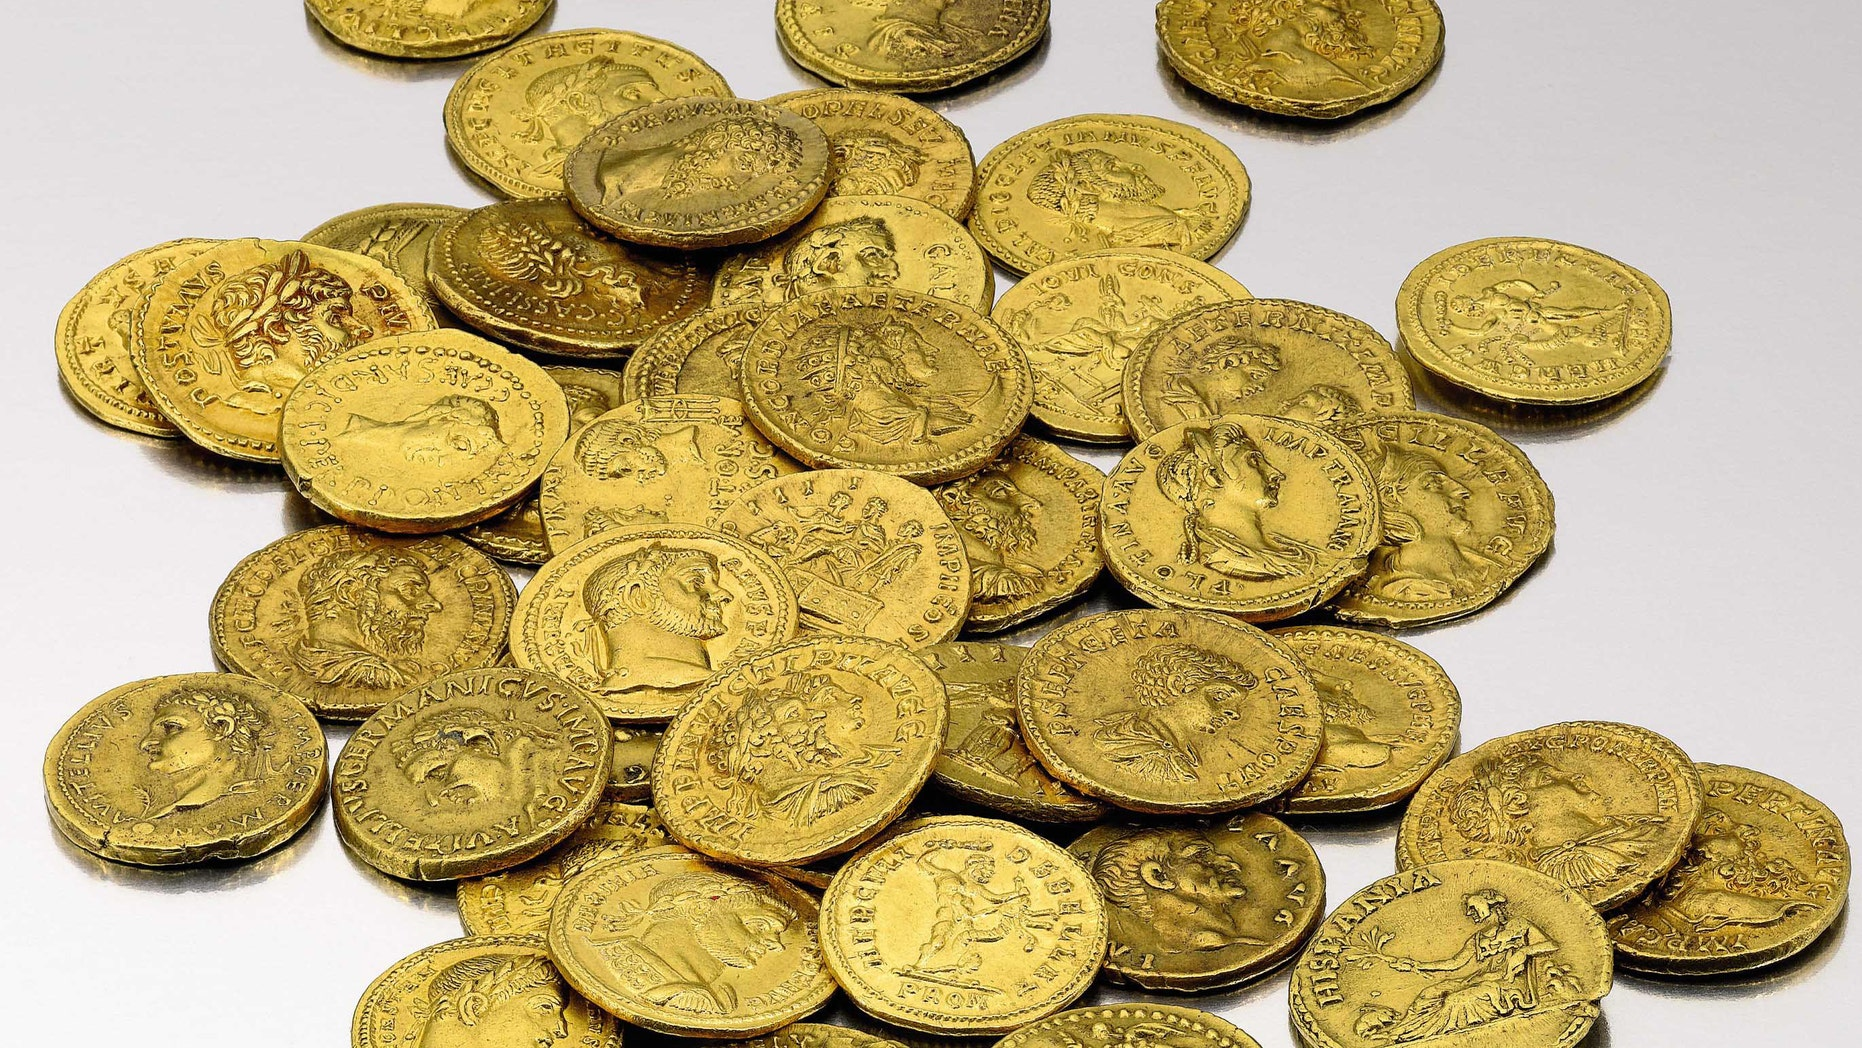 This undated photo provided by Sotheby's showssome gold coins from the 37,895 piece Archer M. Huntington Collection, that will be auctioned by Sotheby's in New York.  The collection Spanish coins dating back to the ancient world  is expected to realize between $25/35 million, and will be on public exhibition in its entirety  during February 2012. (AP Photo/Sotheby's)